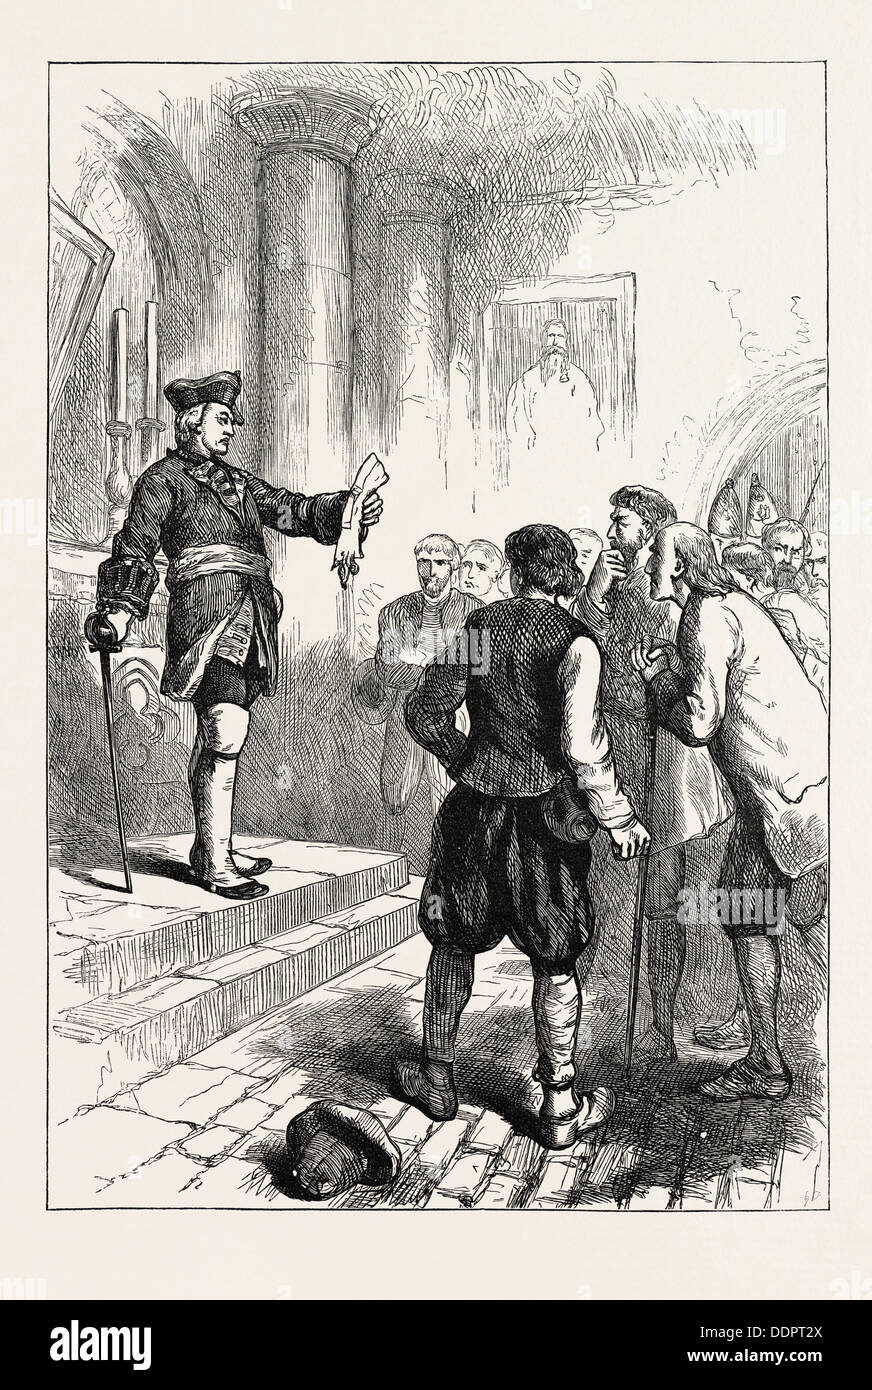 WINSLOW READING THE ROYAL PROCLAMATION, US, USA, 1870s engraving - Stock Image